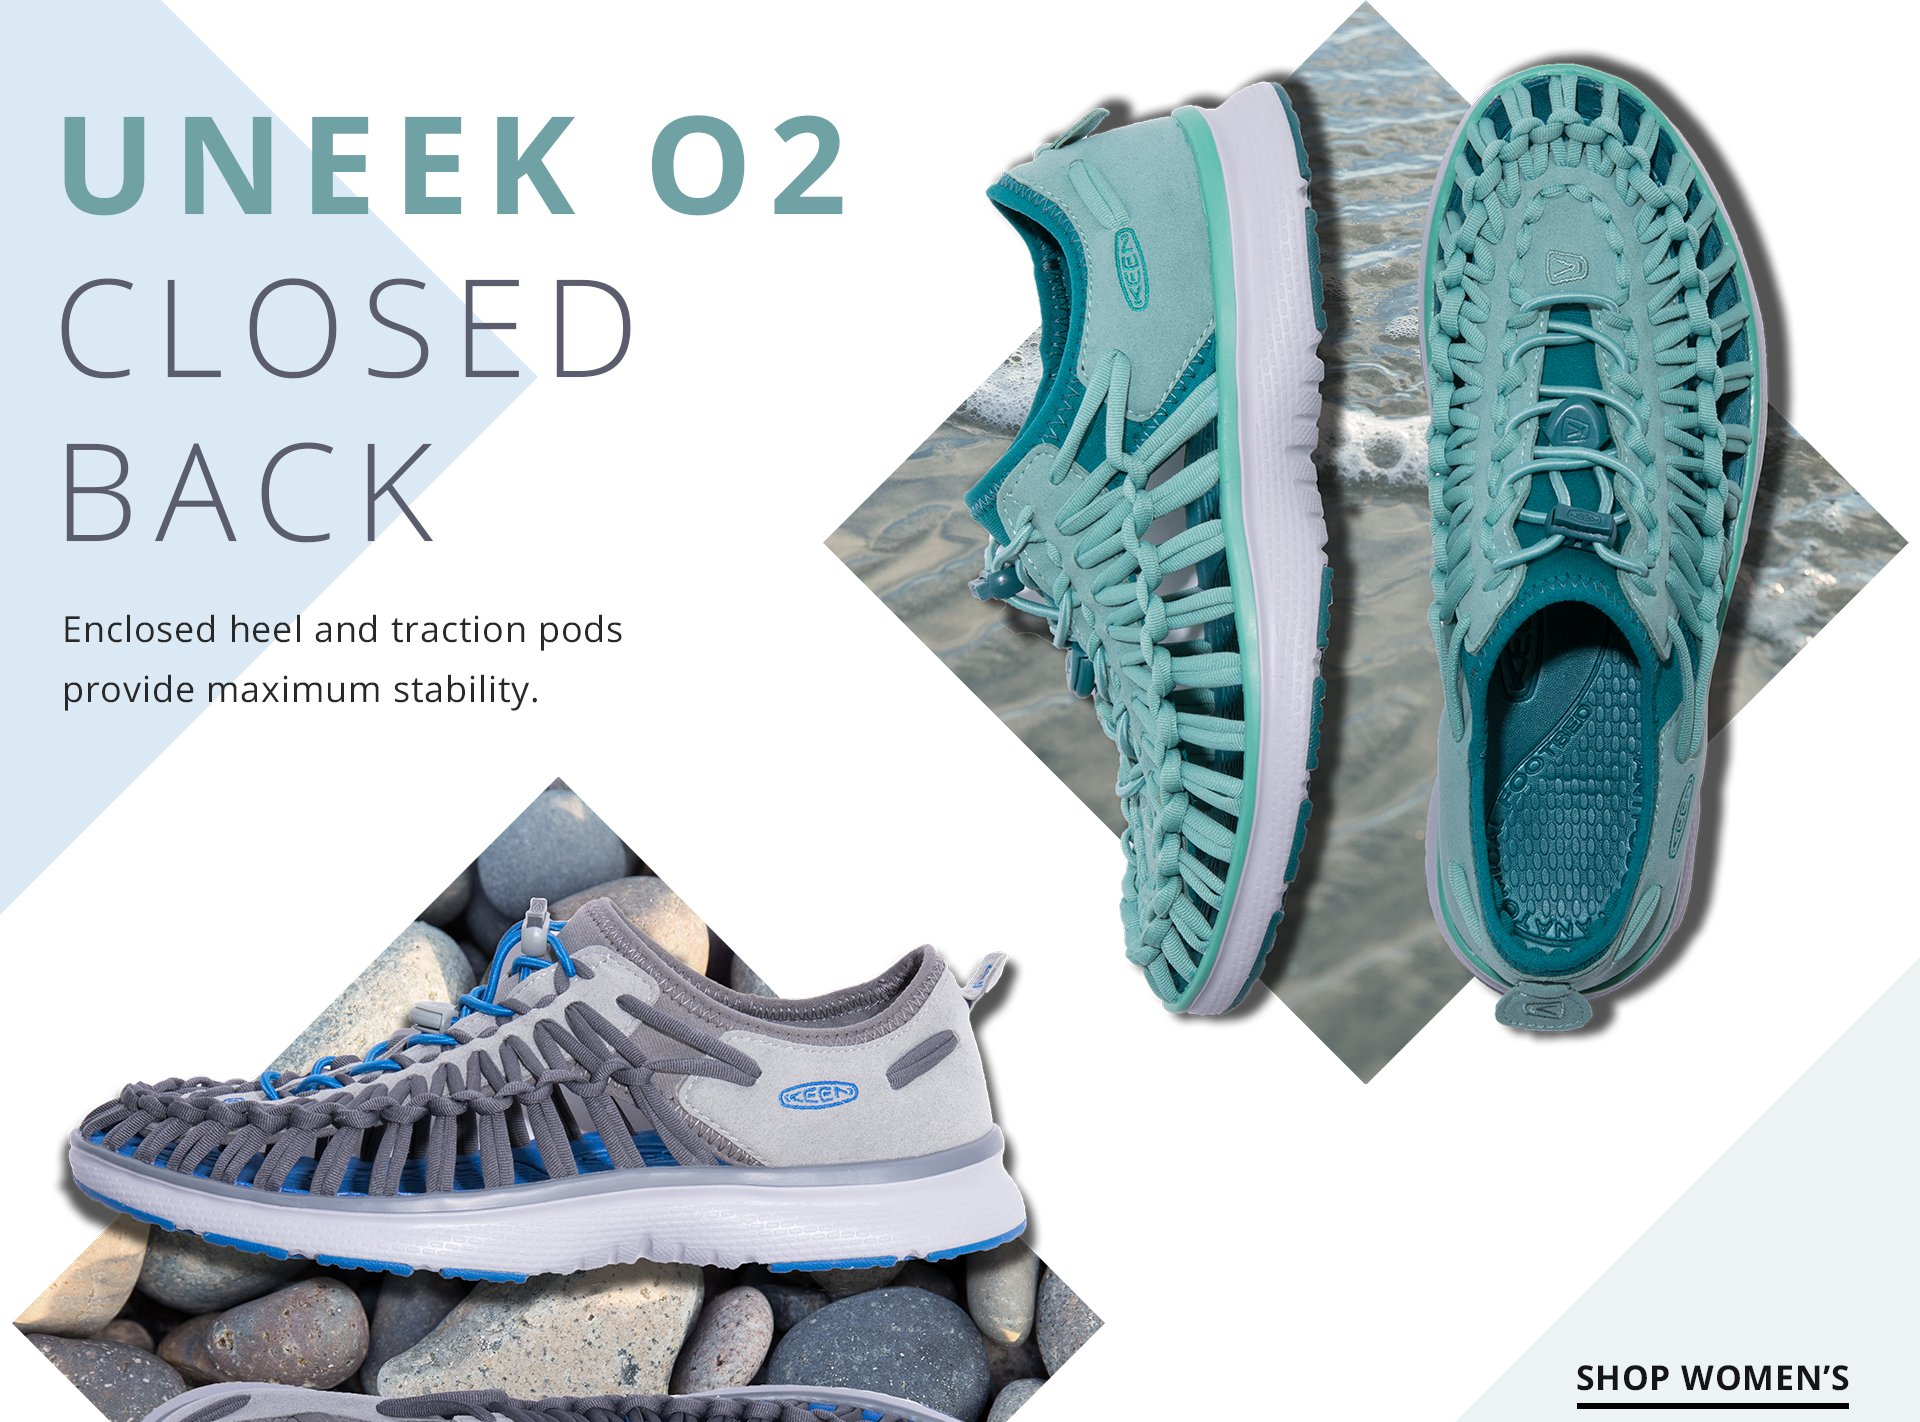 Uneek 02 Closed Back. Enclosed heel and traction pods provide maximum stability. Shop Women.